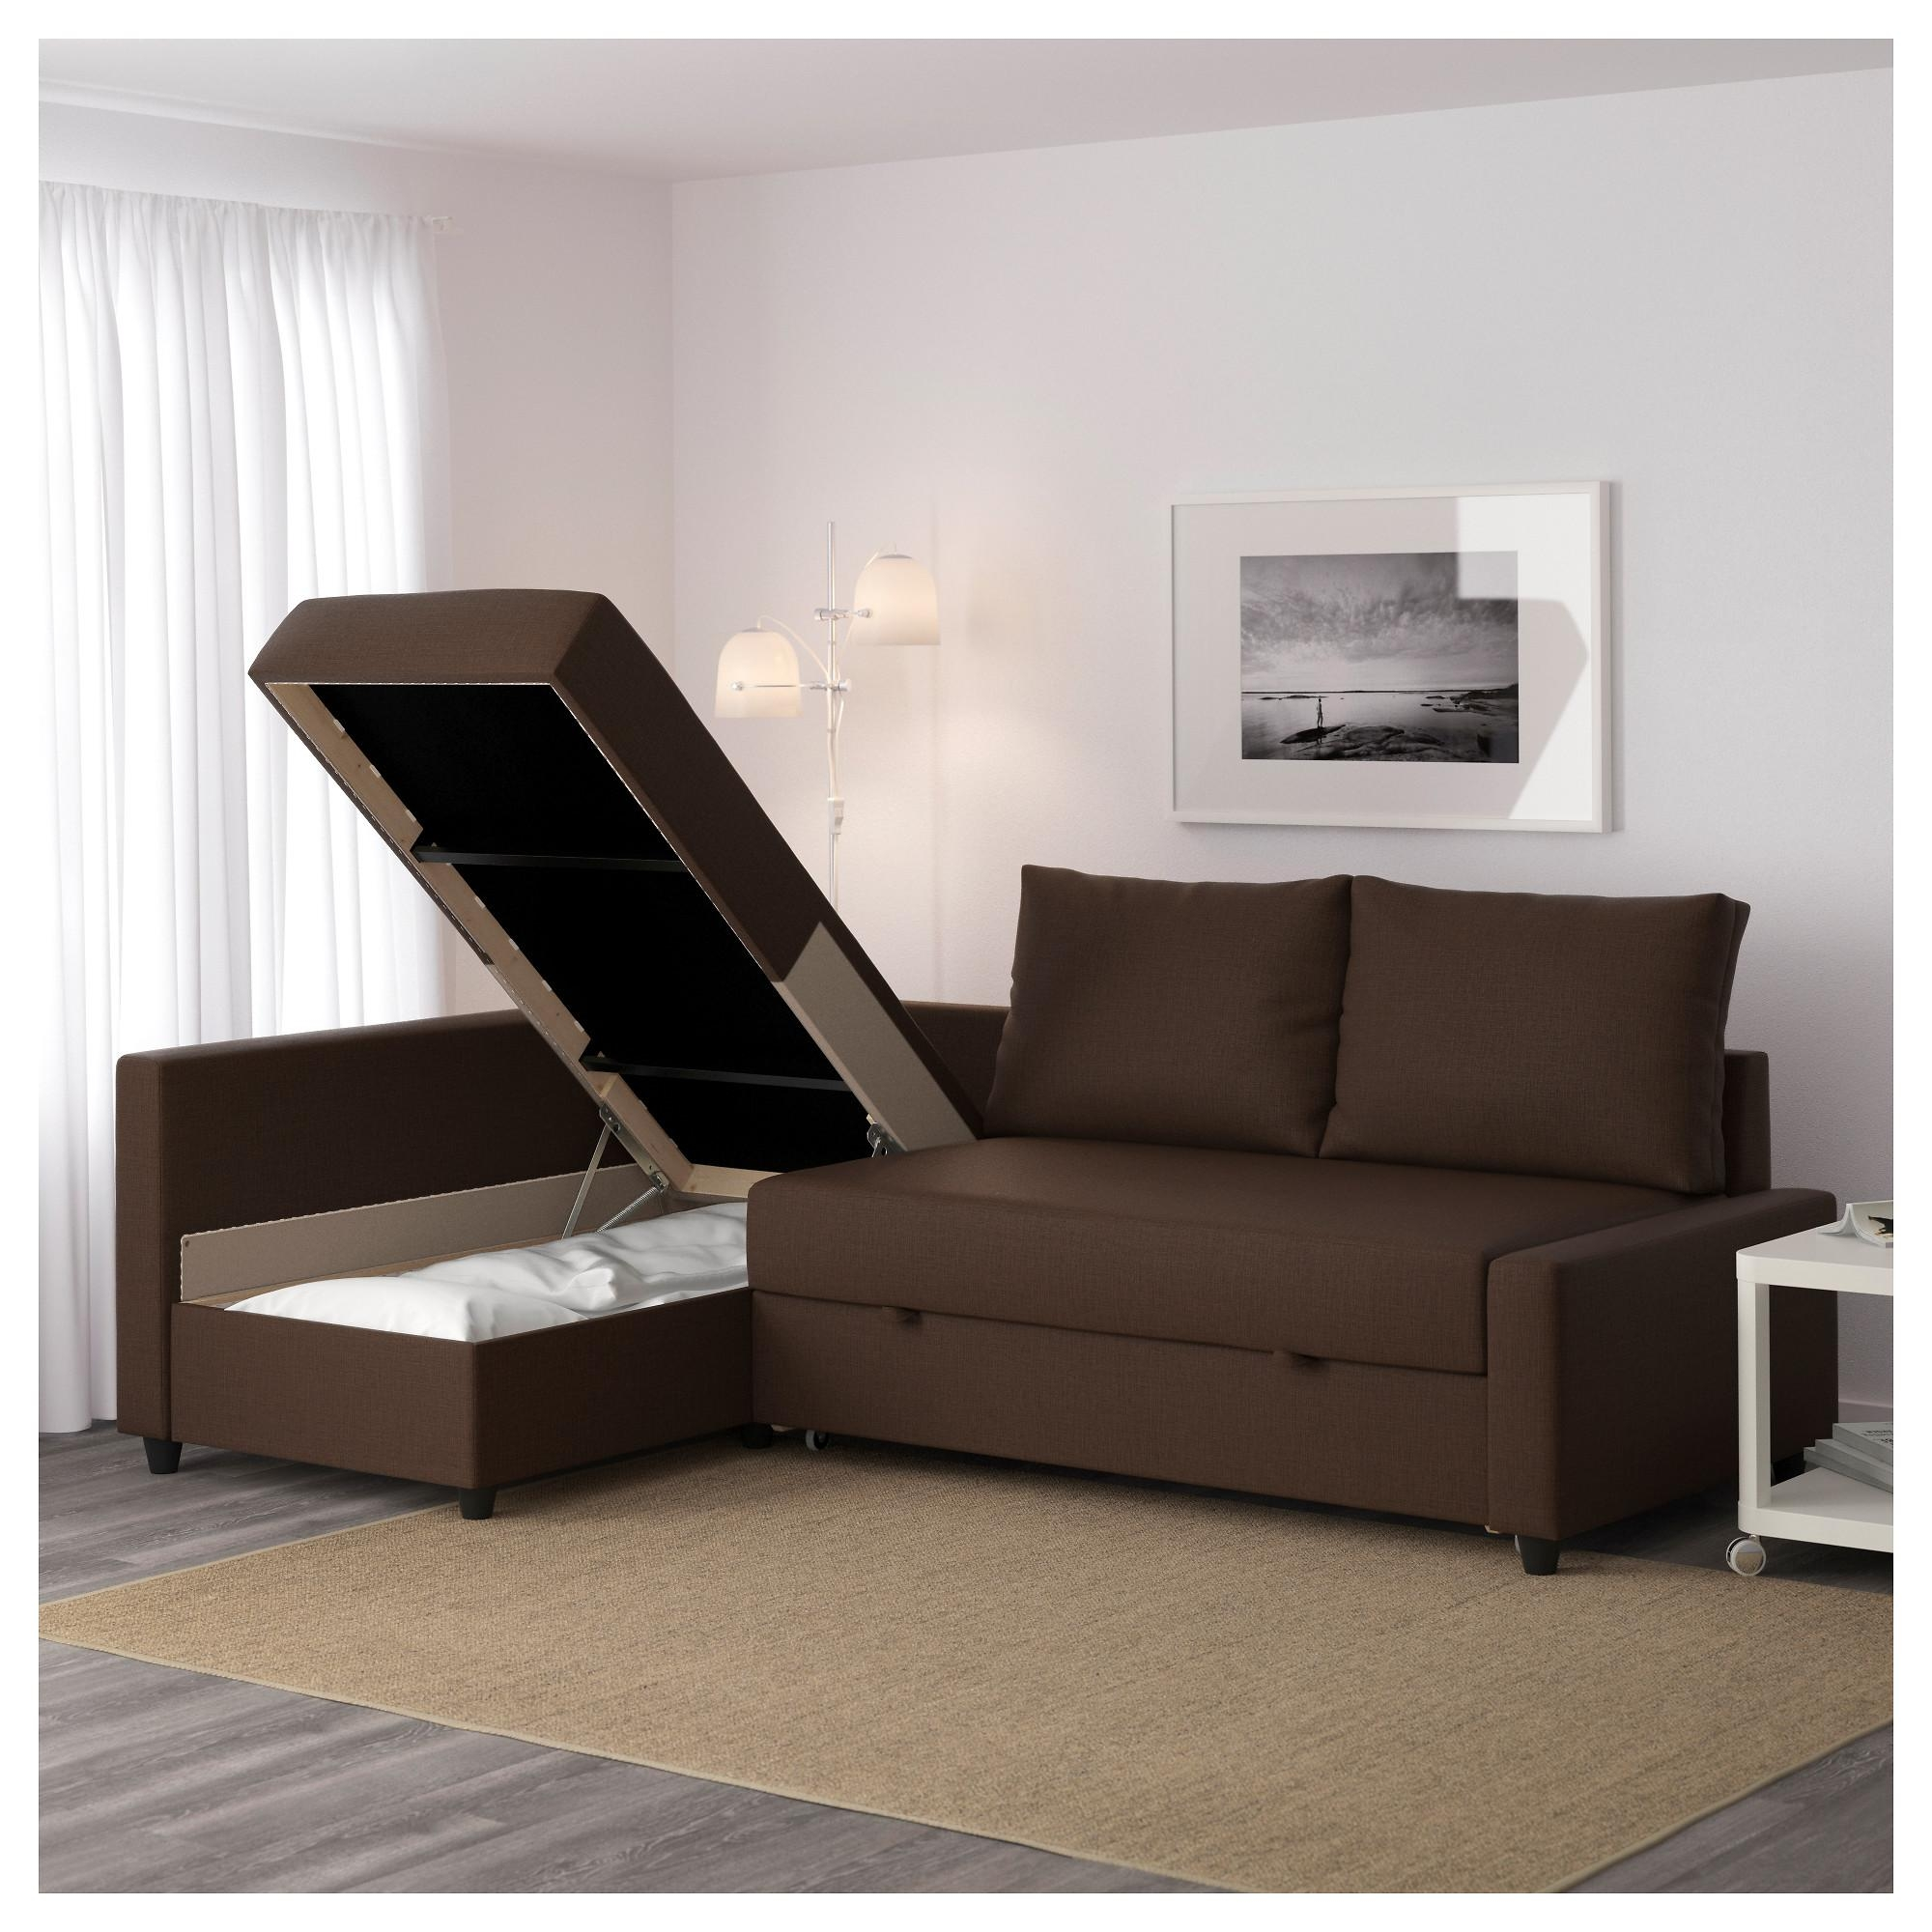 Friheten Sleeper Sectional,3 Seat W/storage – Skiftebo Dark Gray Within Storage Sofa Beds (View 12 of 20)